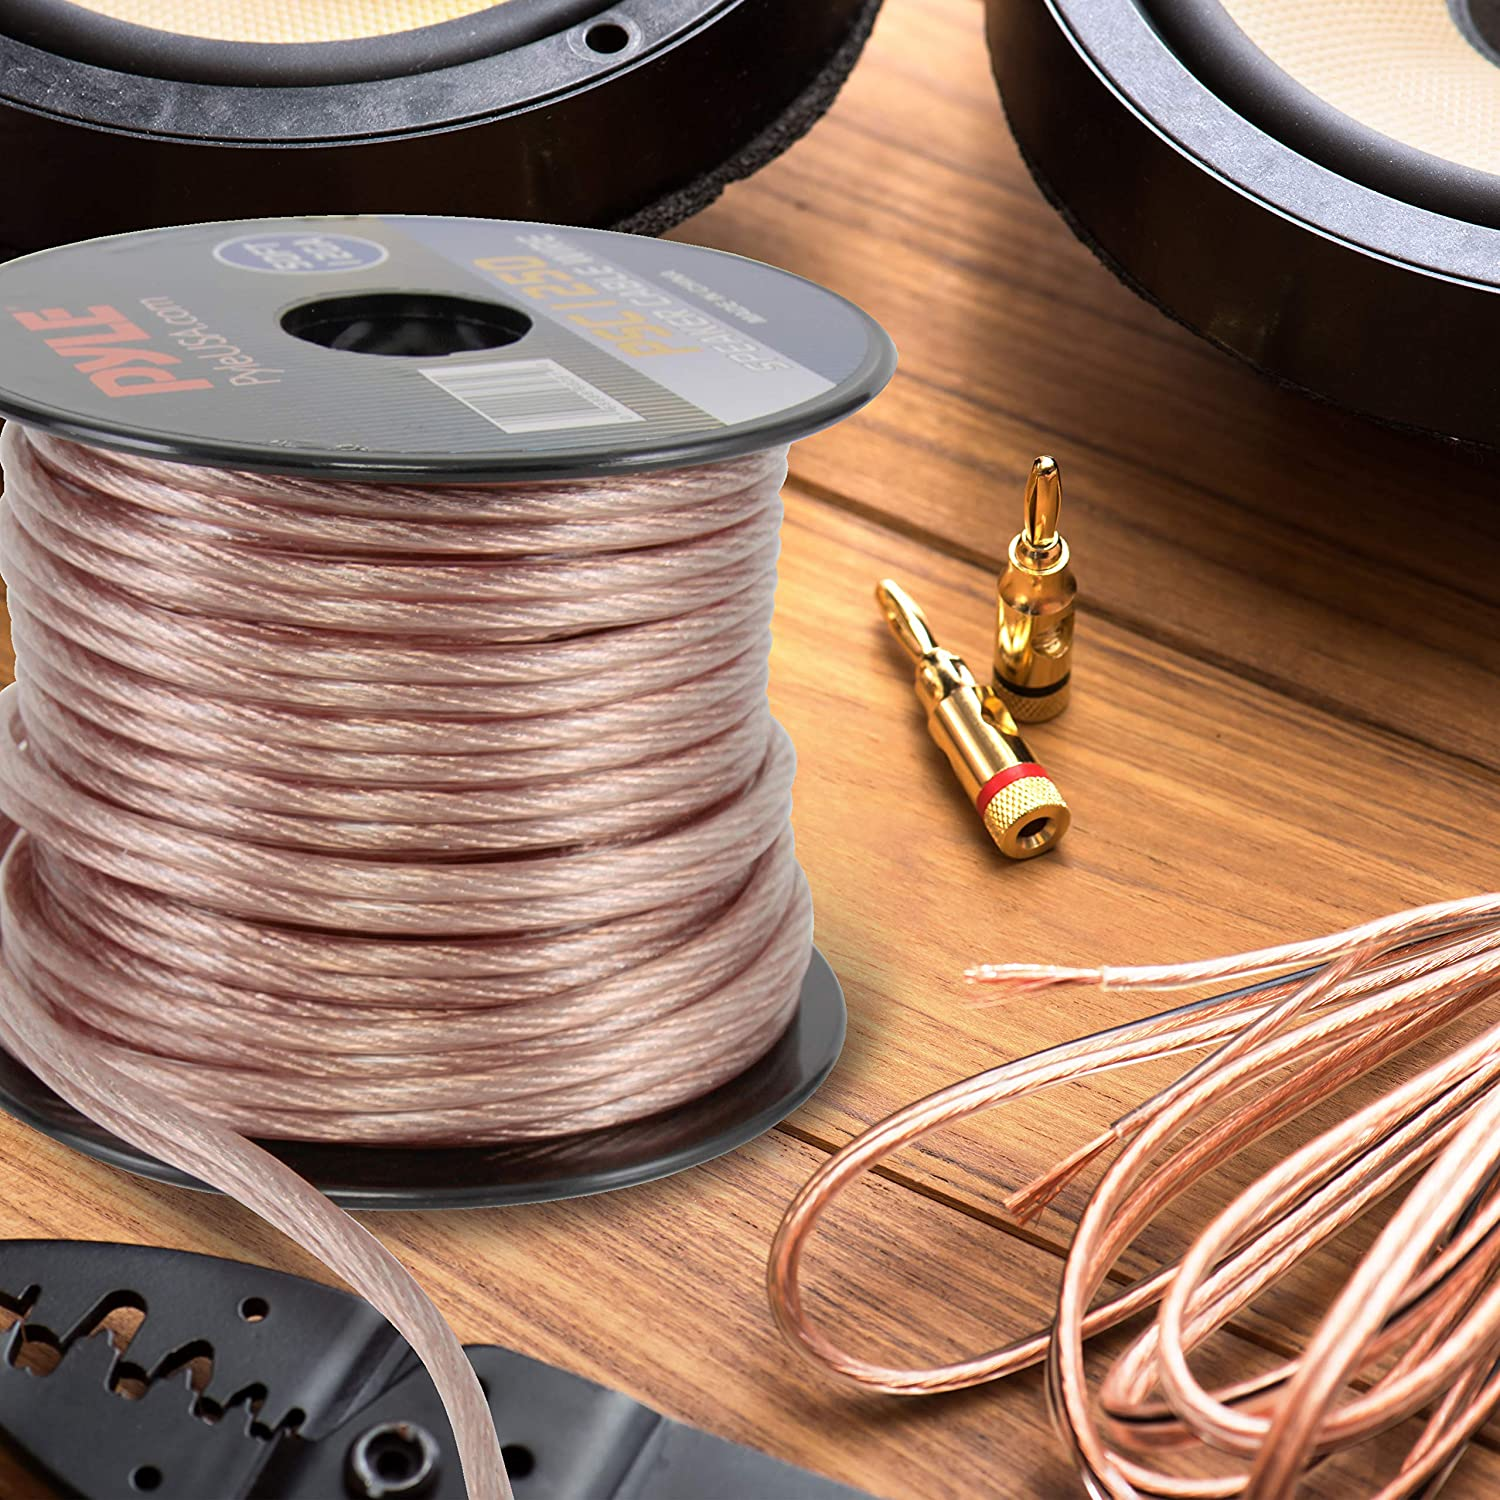 50ft 12 Gauge Speaker Wire Copper Coated Cable In Vs Aluminum Wiring Spool For Connecting Audio Stereo To Amplifier Surround Sound System Tv Home Theater And